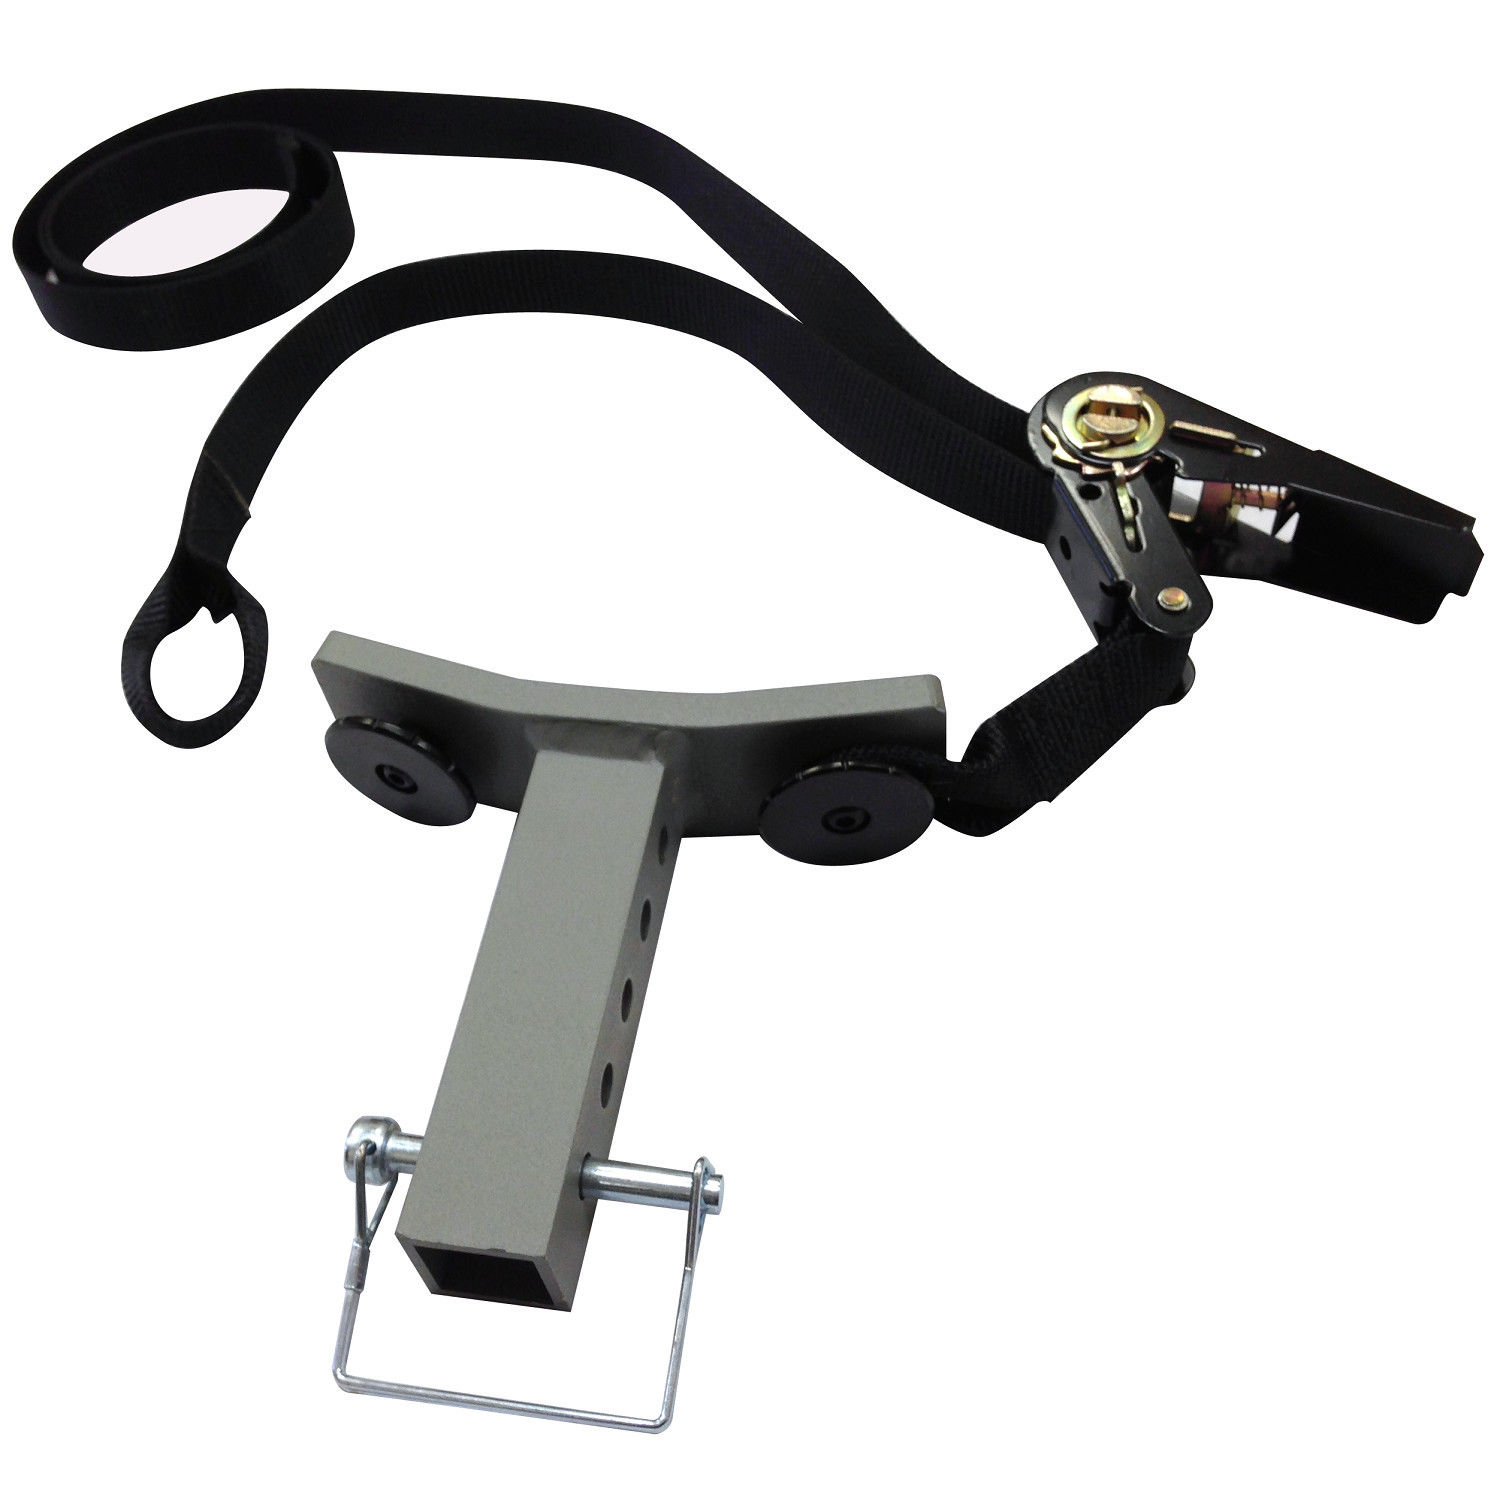 x-stand quick hitch receiver